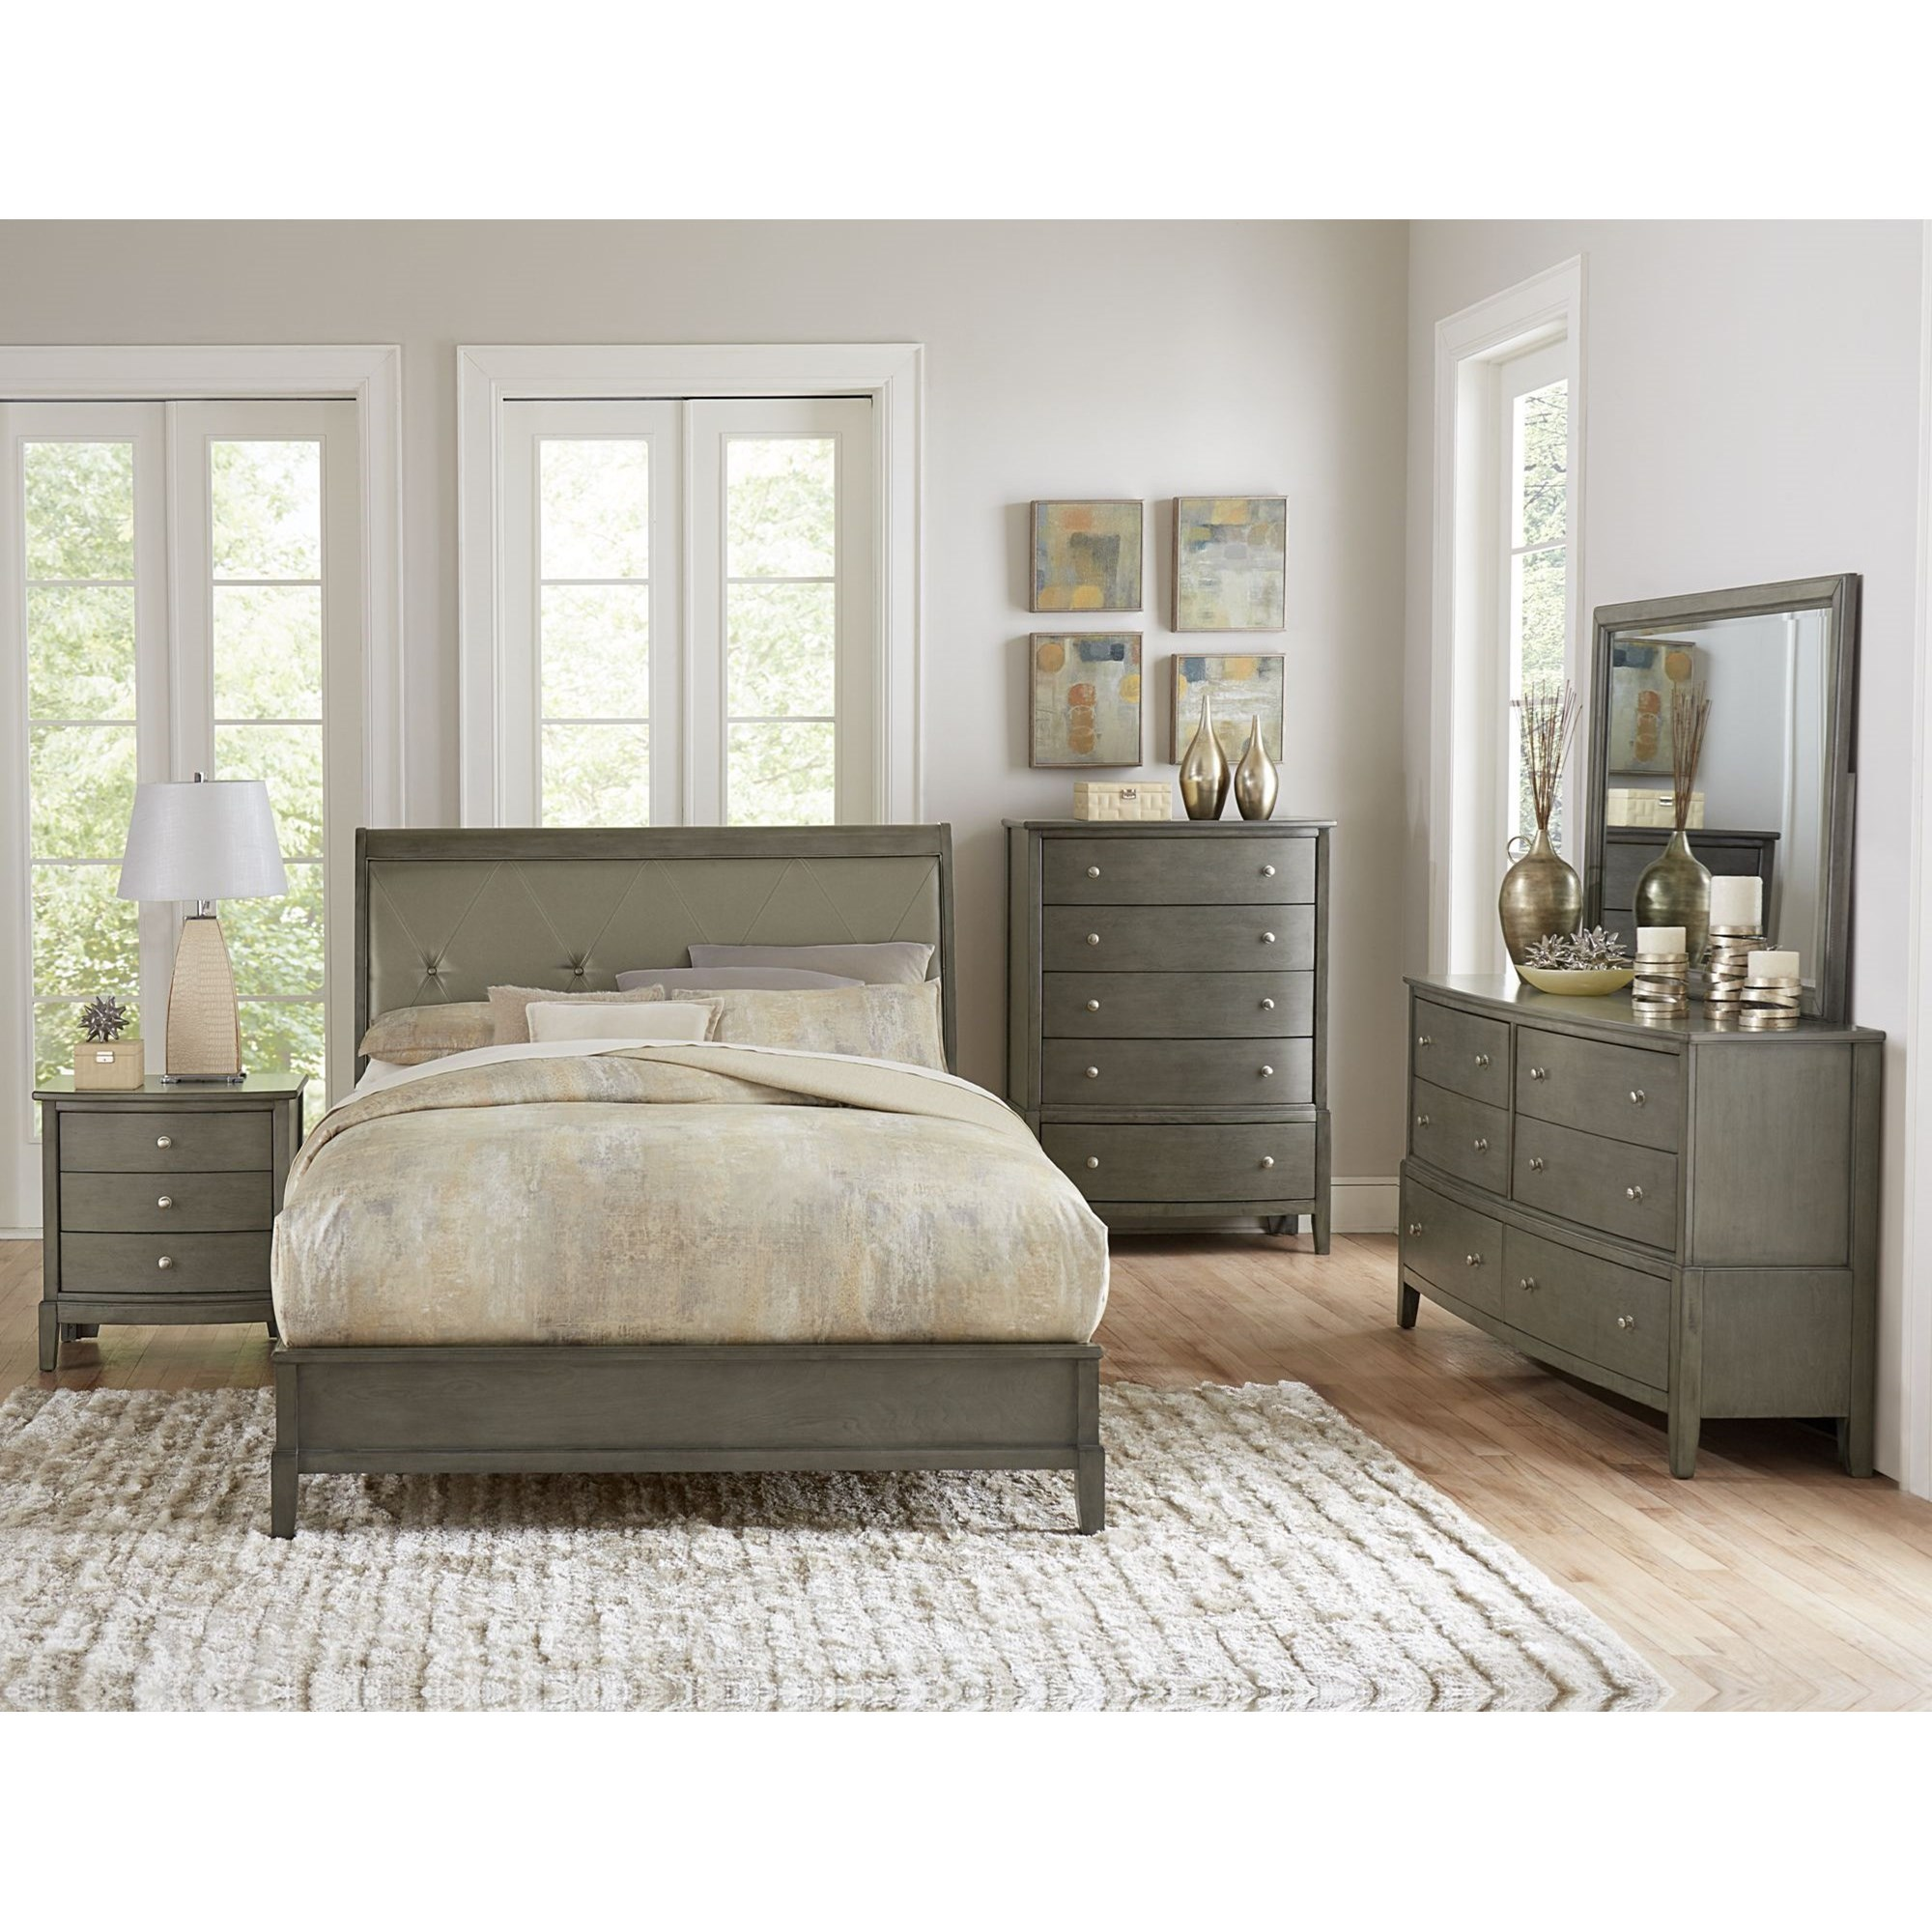 Cotterill Queen Bedroom Group by Homelegance at Lindy's Furniture Company